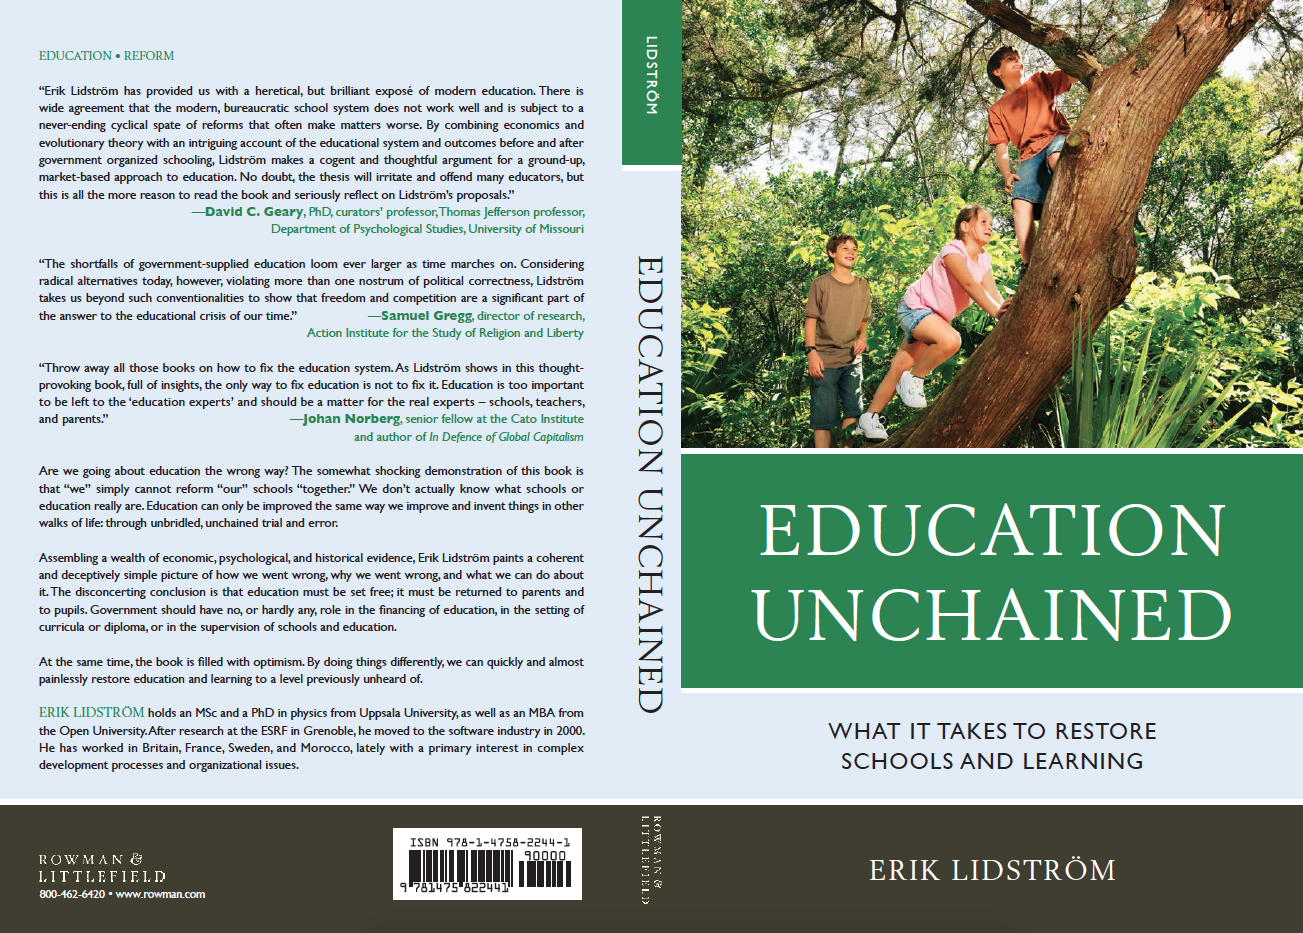 Education_Unchained_cover_proof